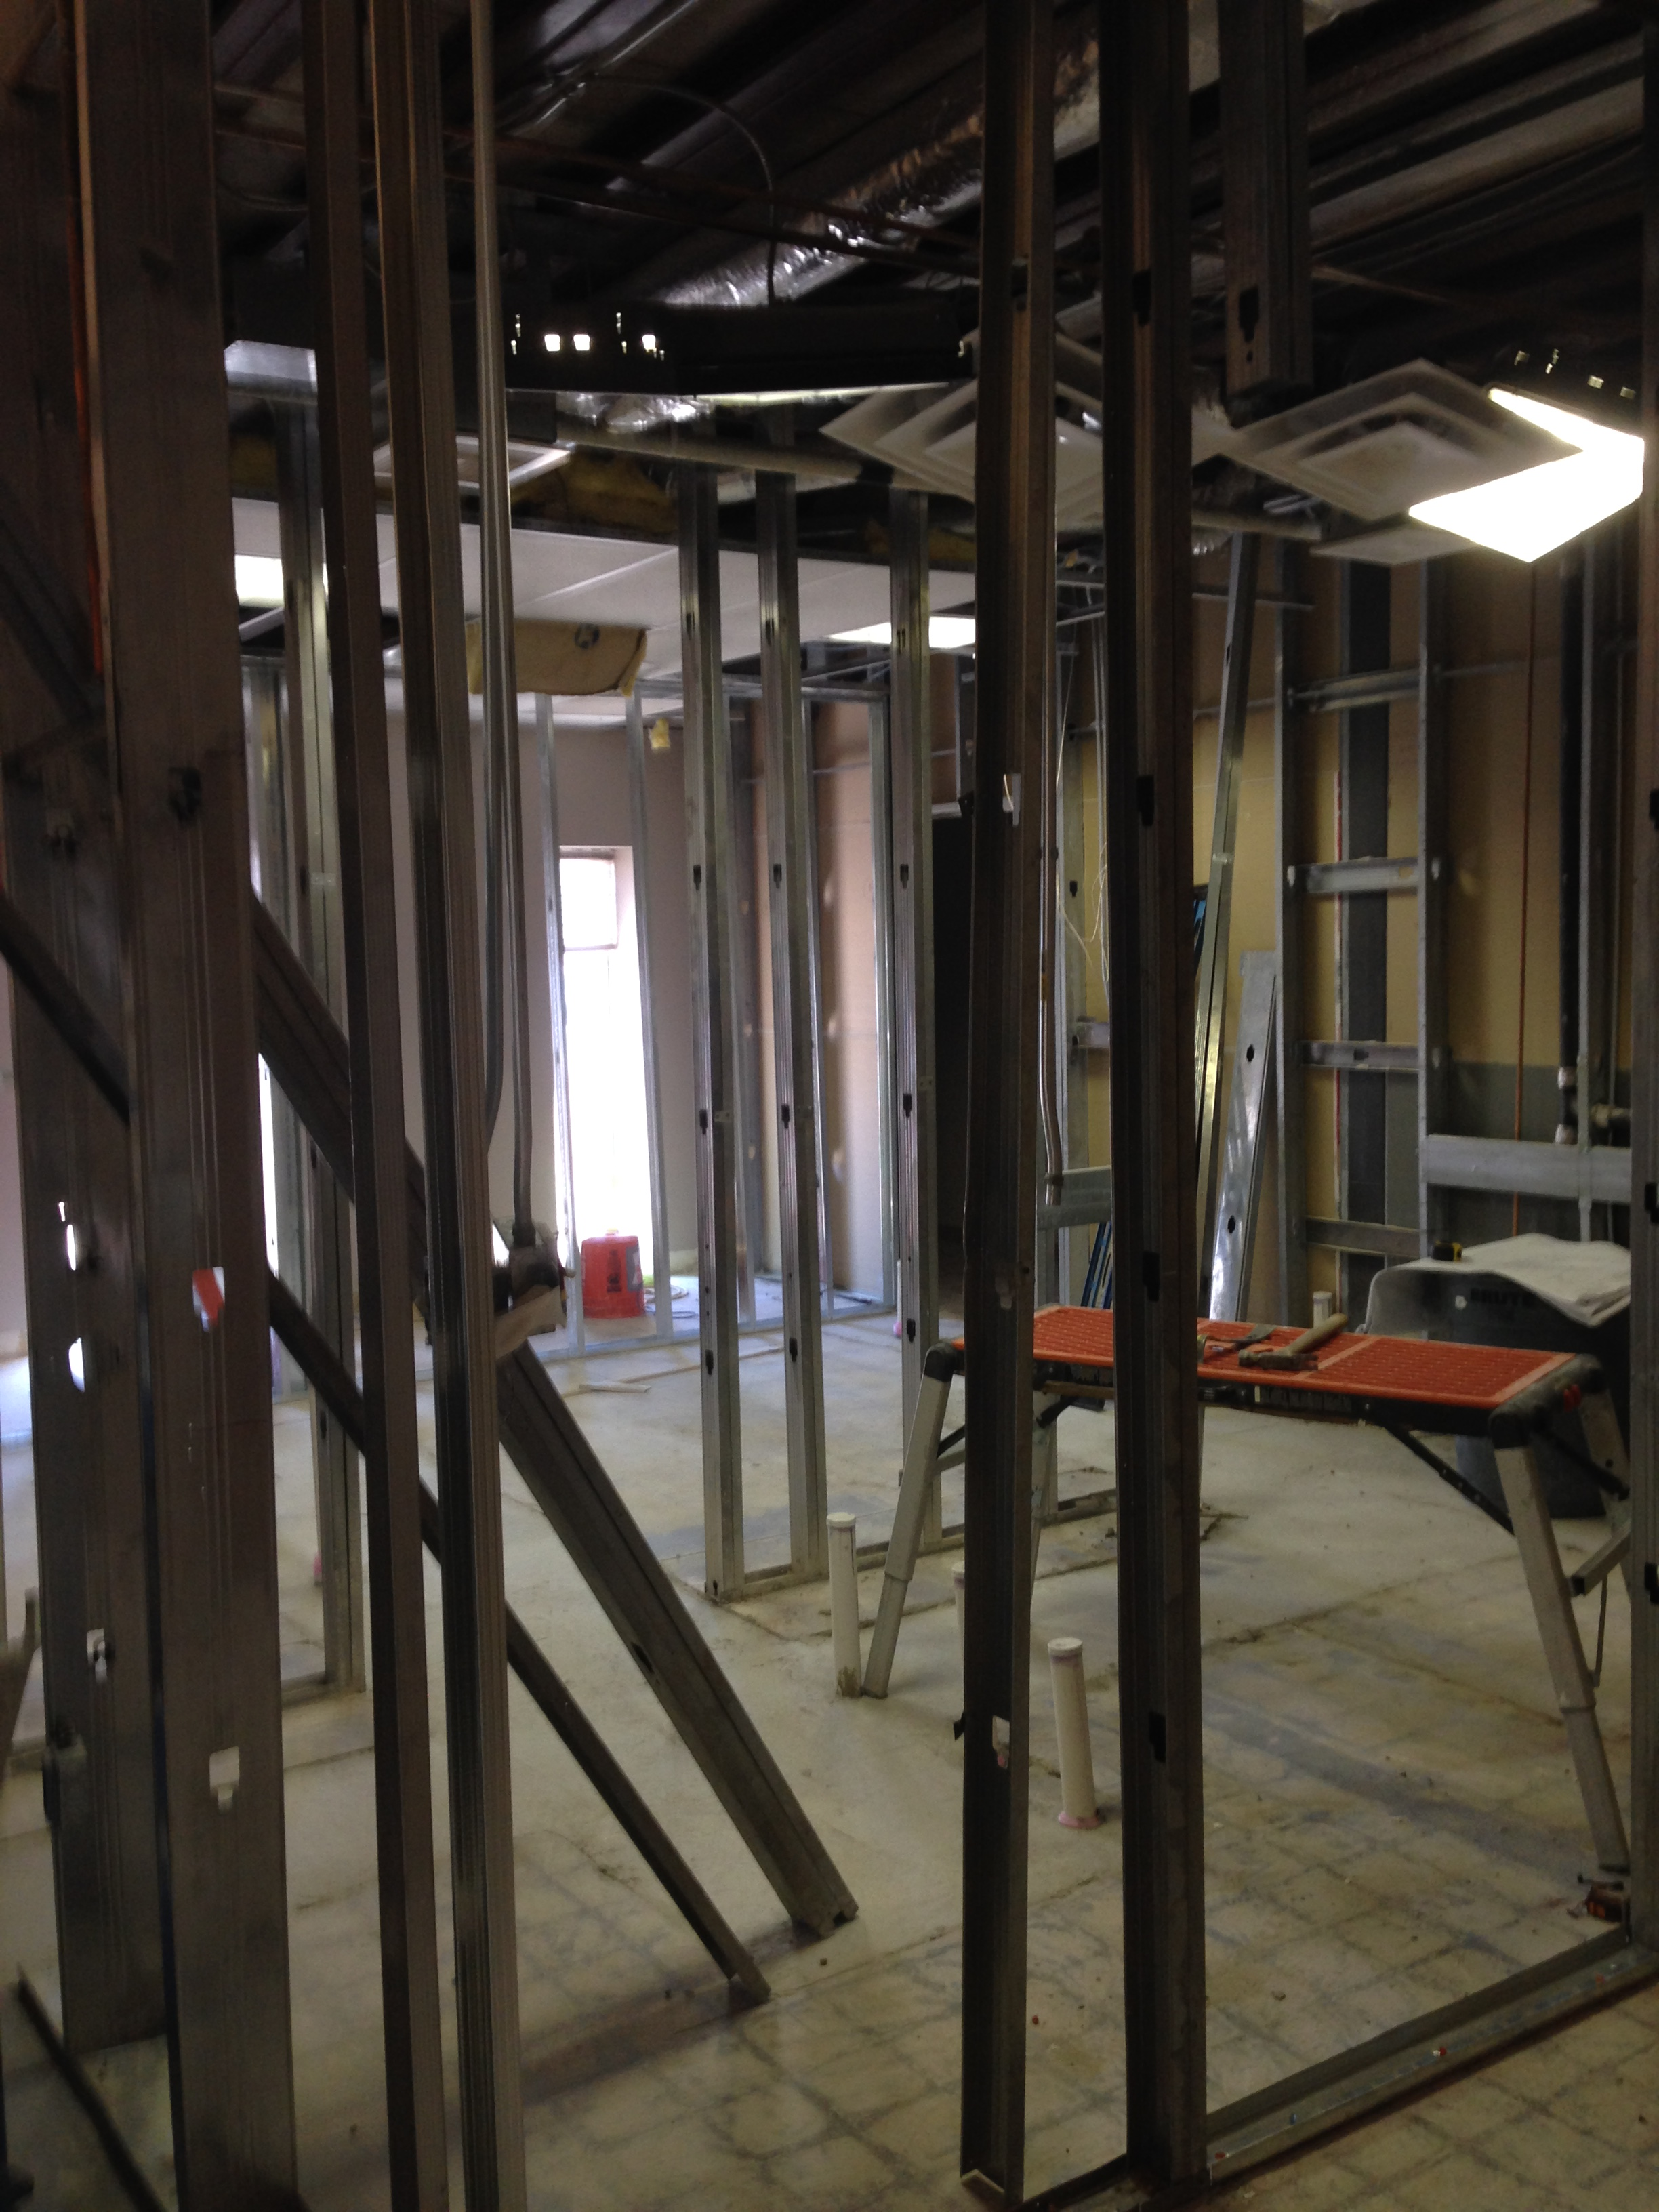 Restrooms and utility closet construction